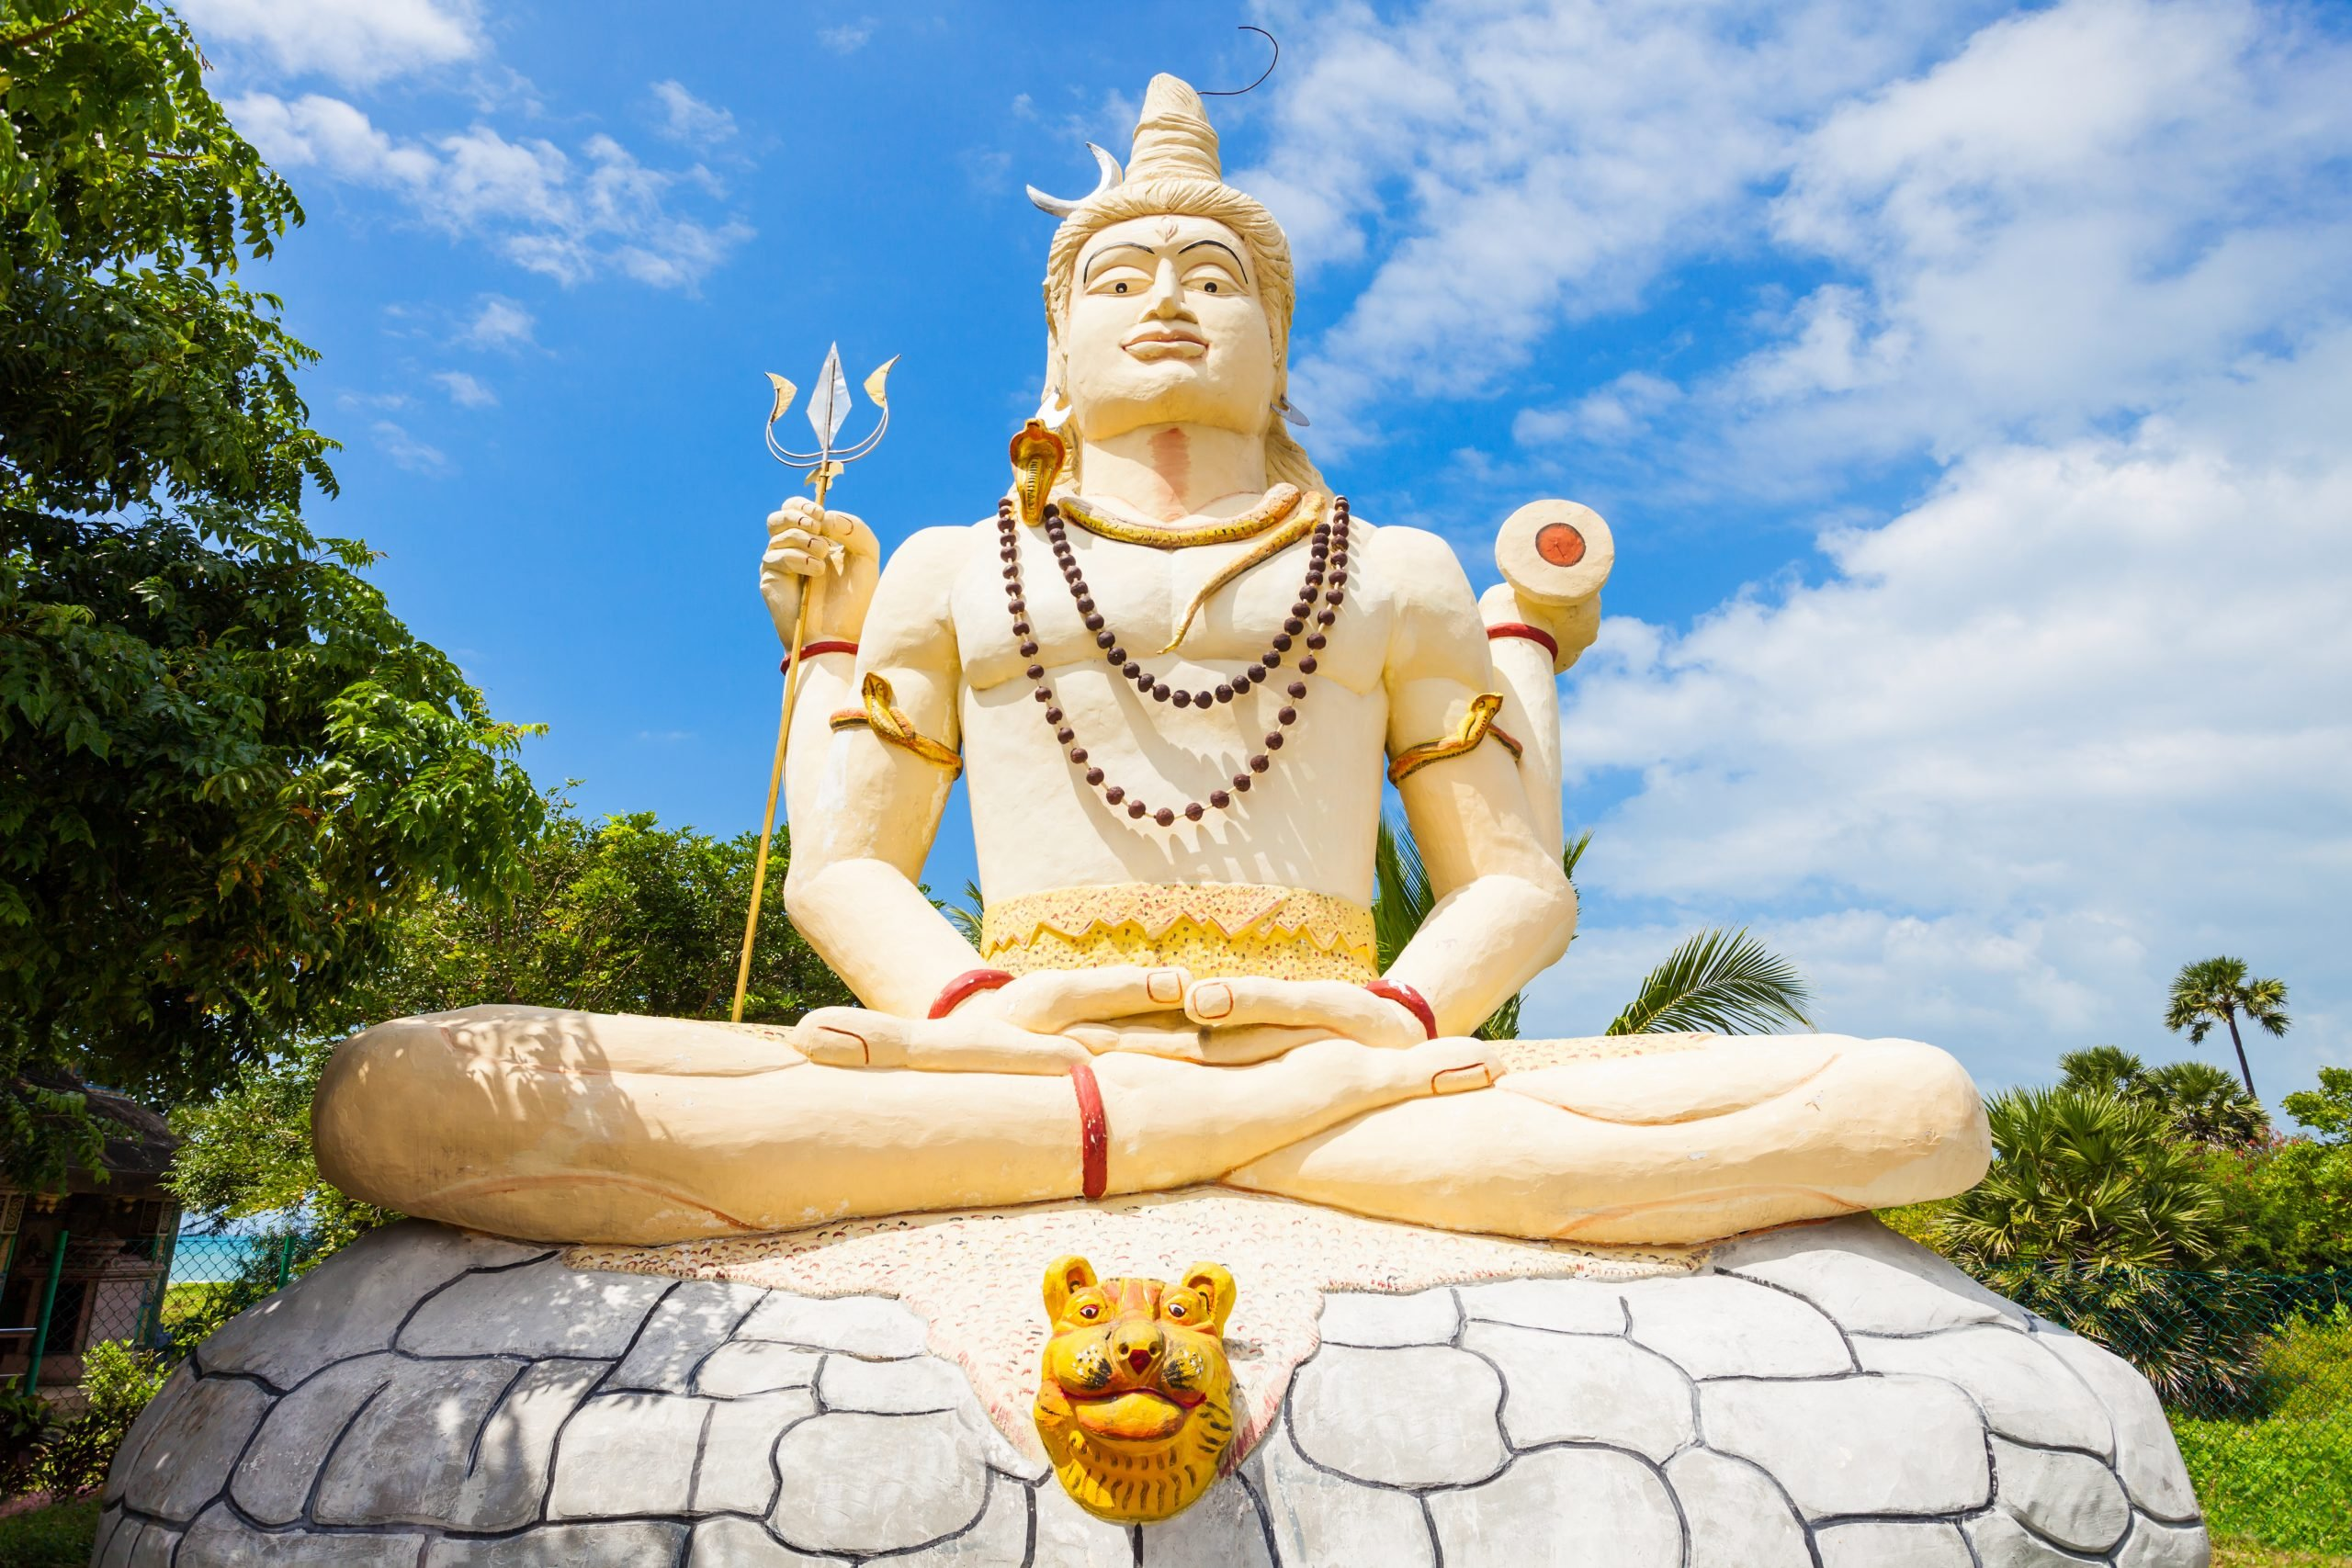 Wiew of Statue of Shiva in Jaffa, Sri Lanka